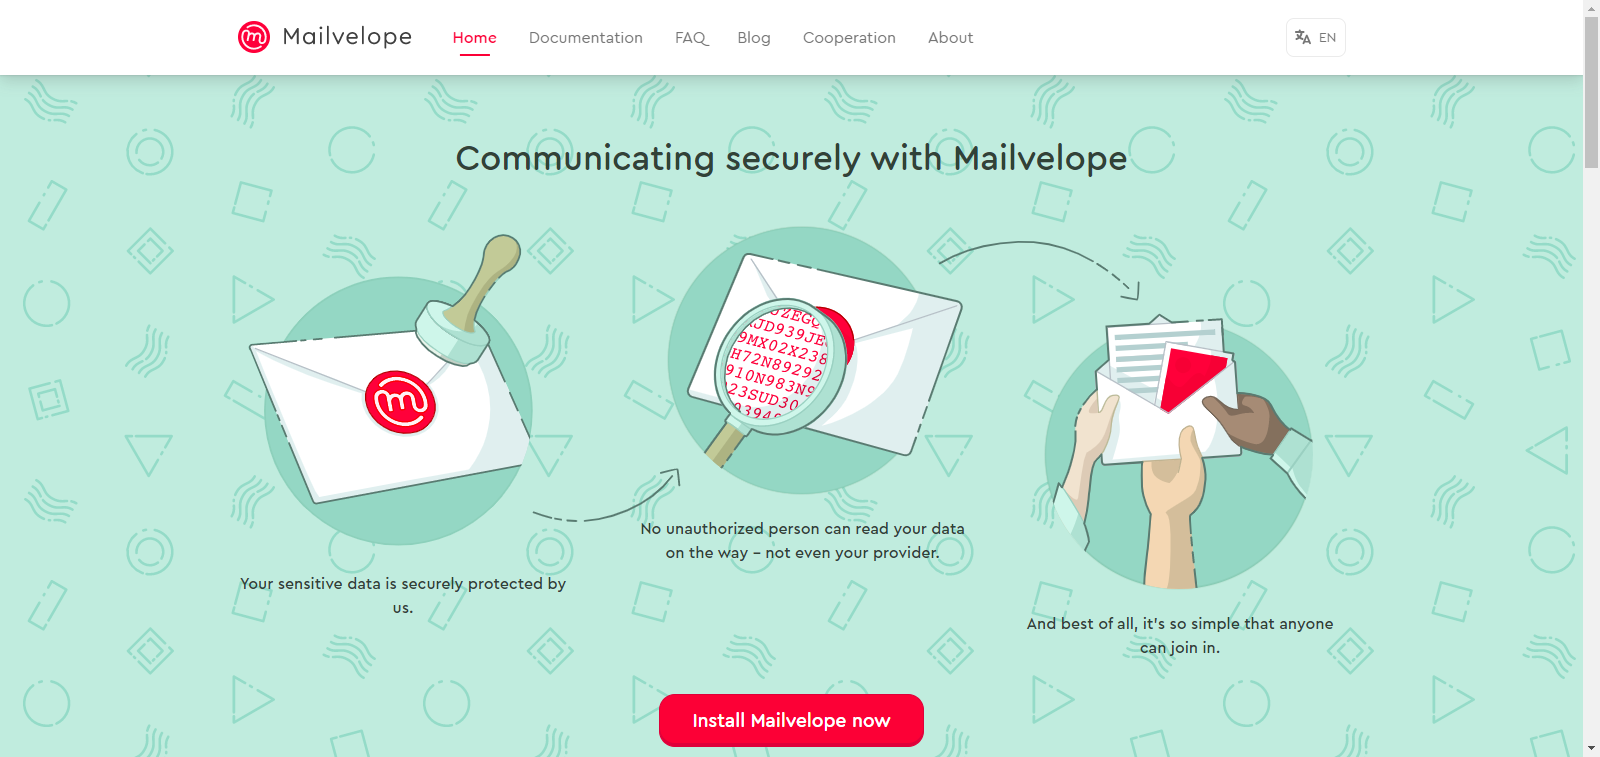 Mailvelope website